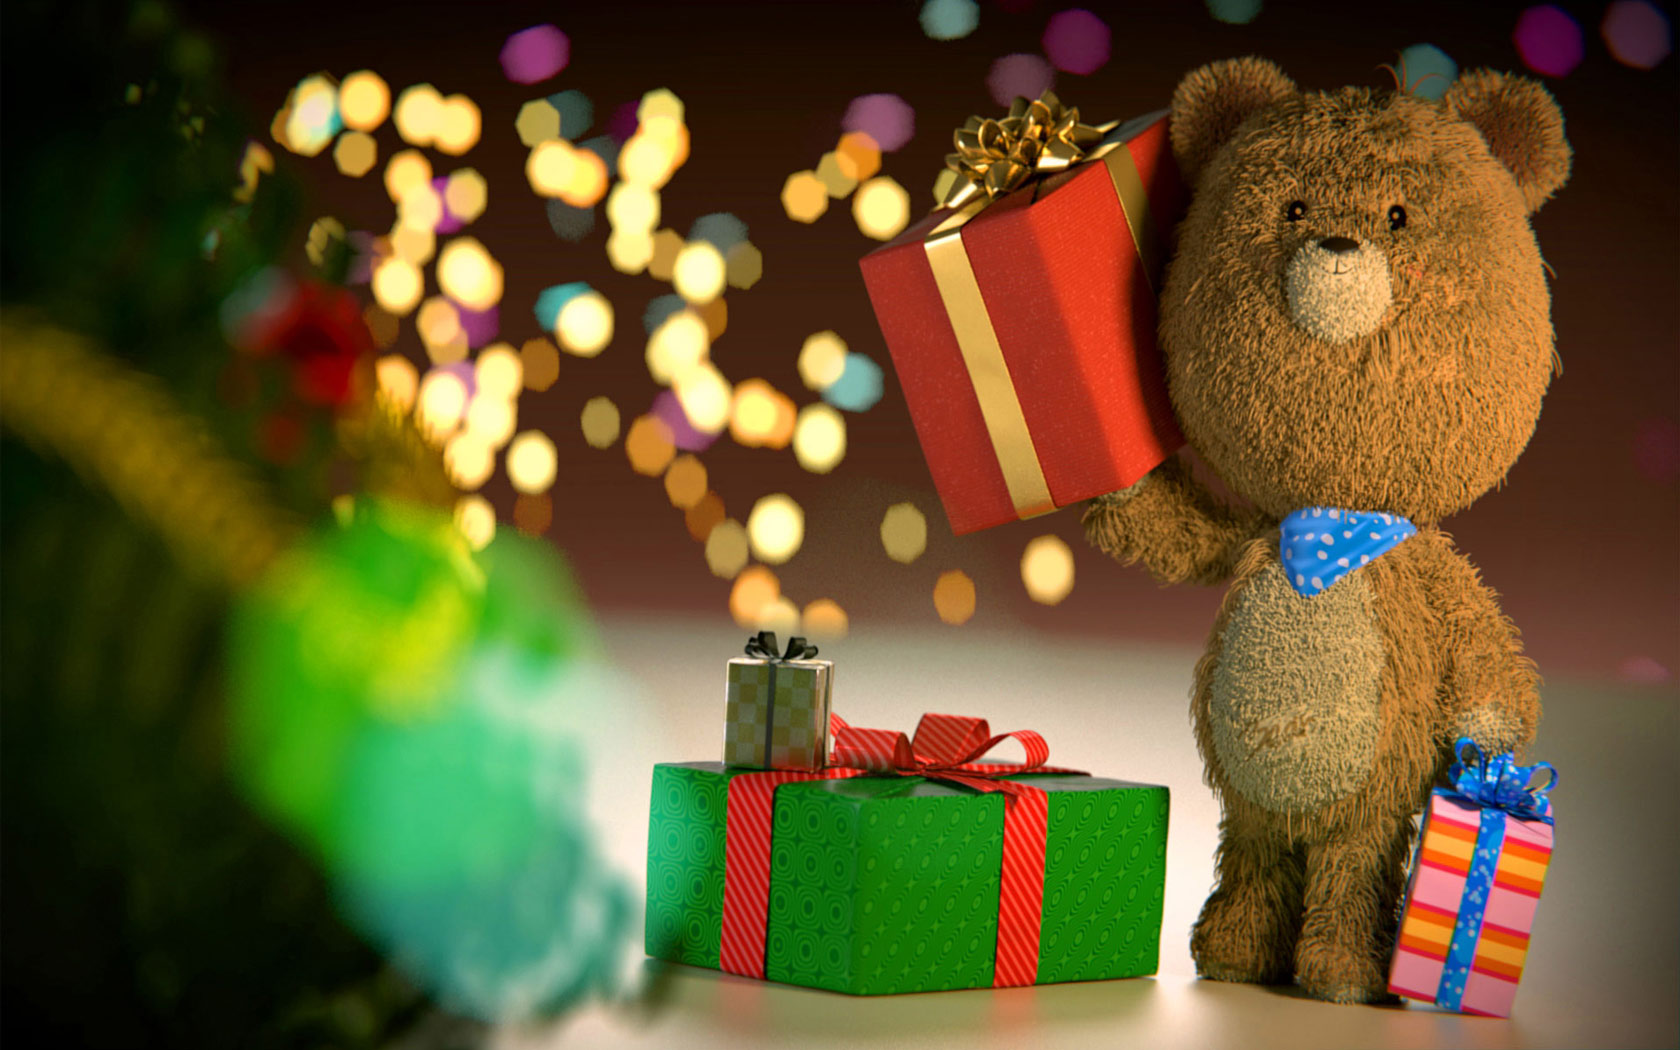 Christmas Teddy Bear Wallpaper: Teddy Bear Wallpaper And Screensavers